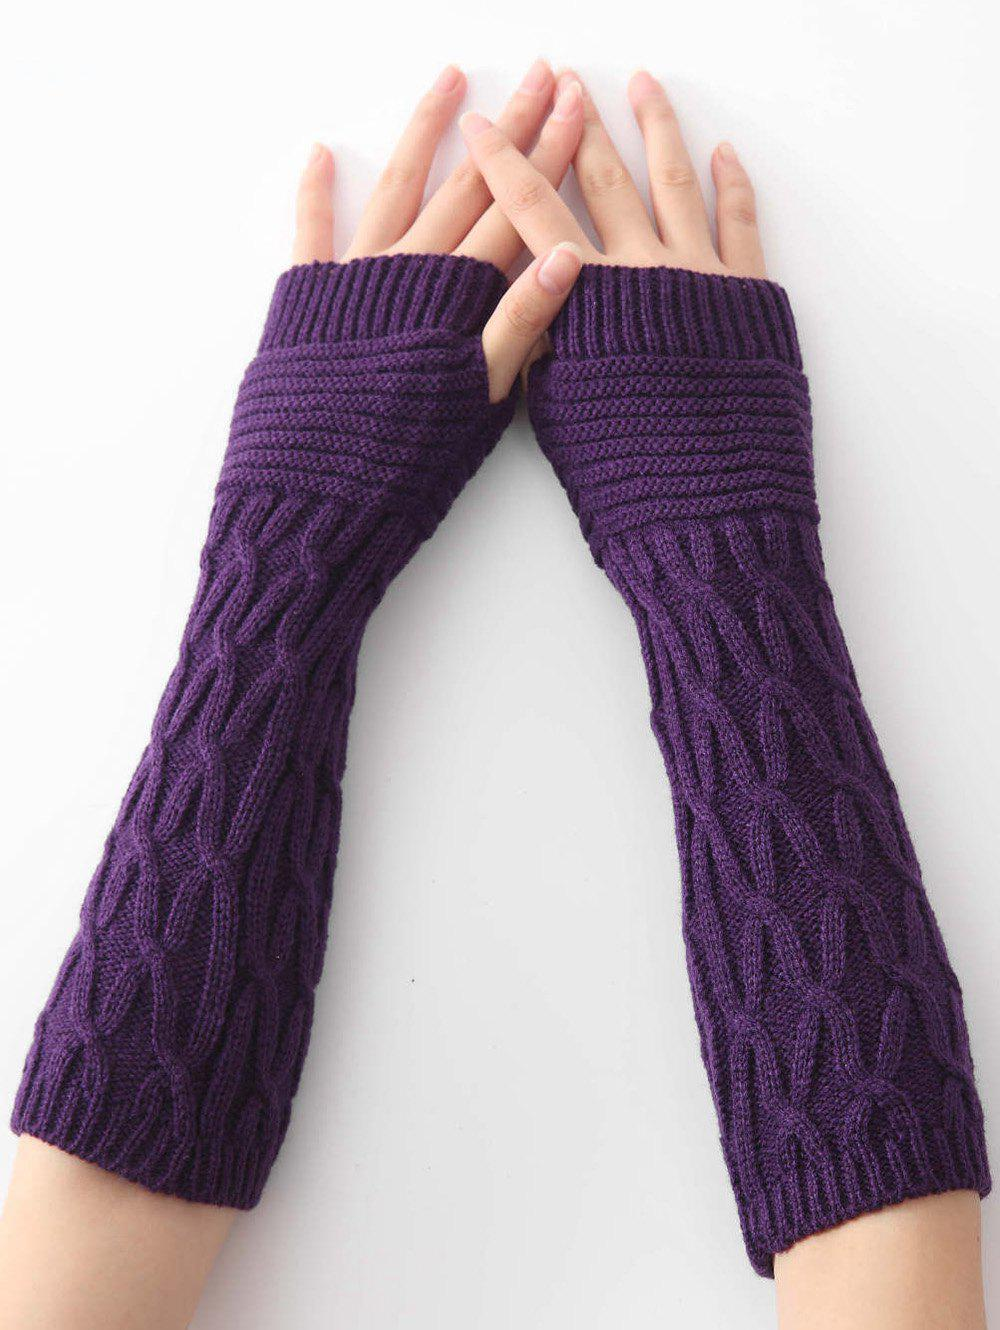 Sale Unique Irregular Striped Crochet Knitted Gloves